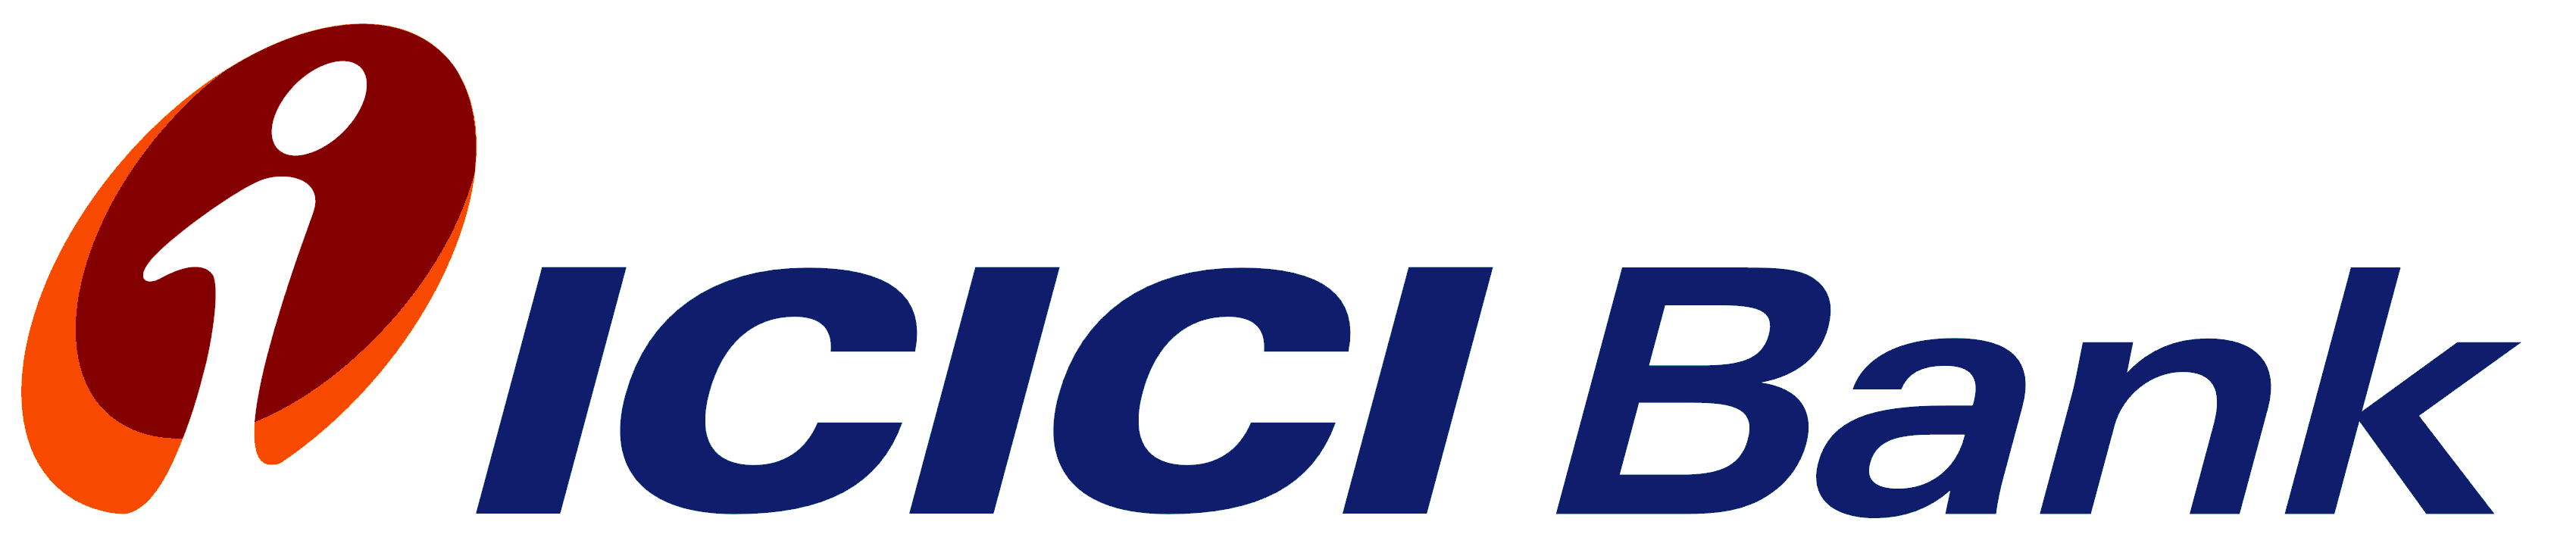 ICICI Bank – Logos Download